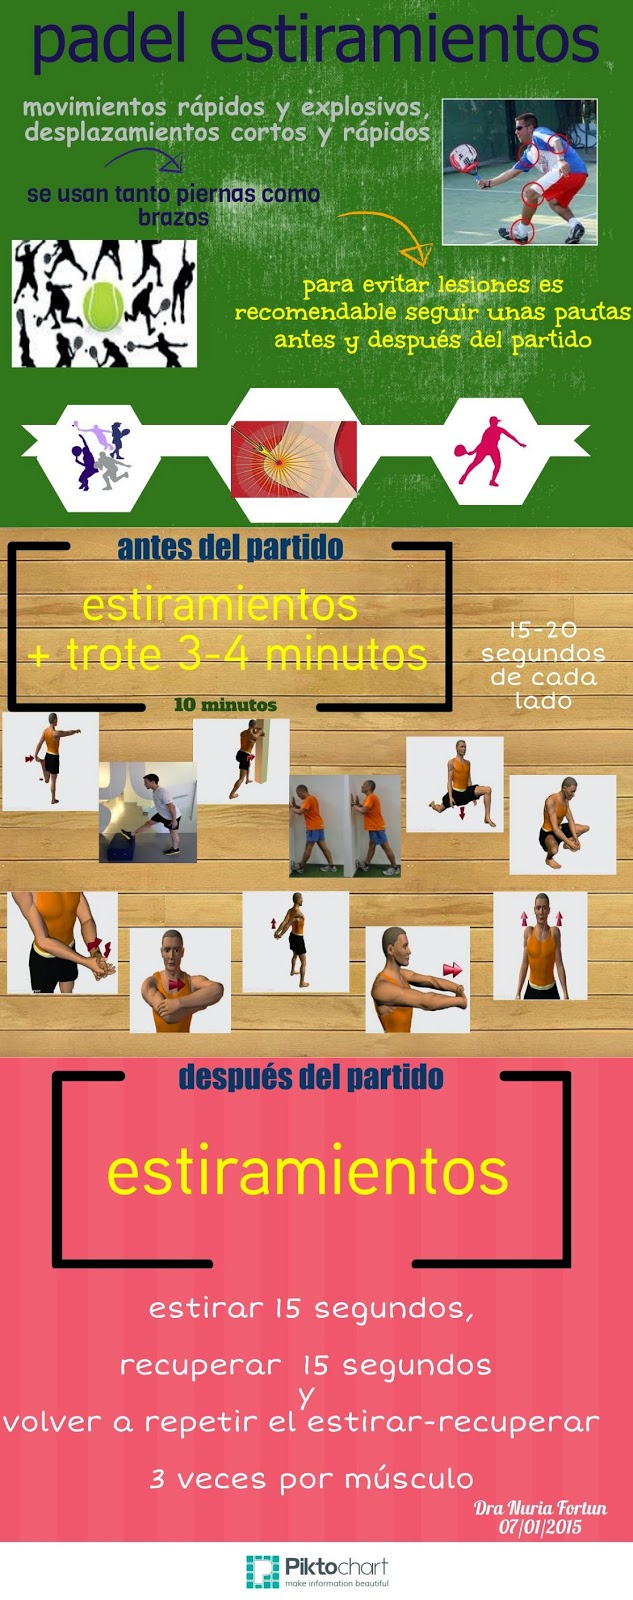 2cd3a-estiramientos2by2bpadel